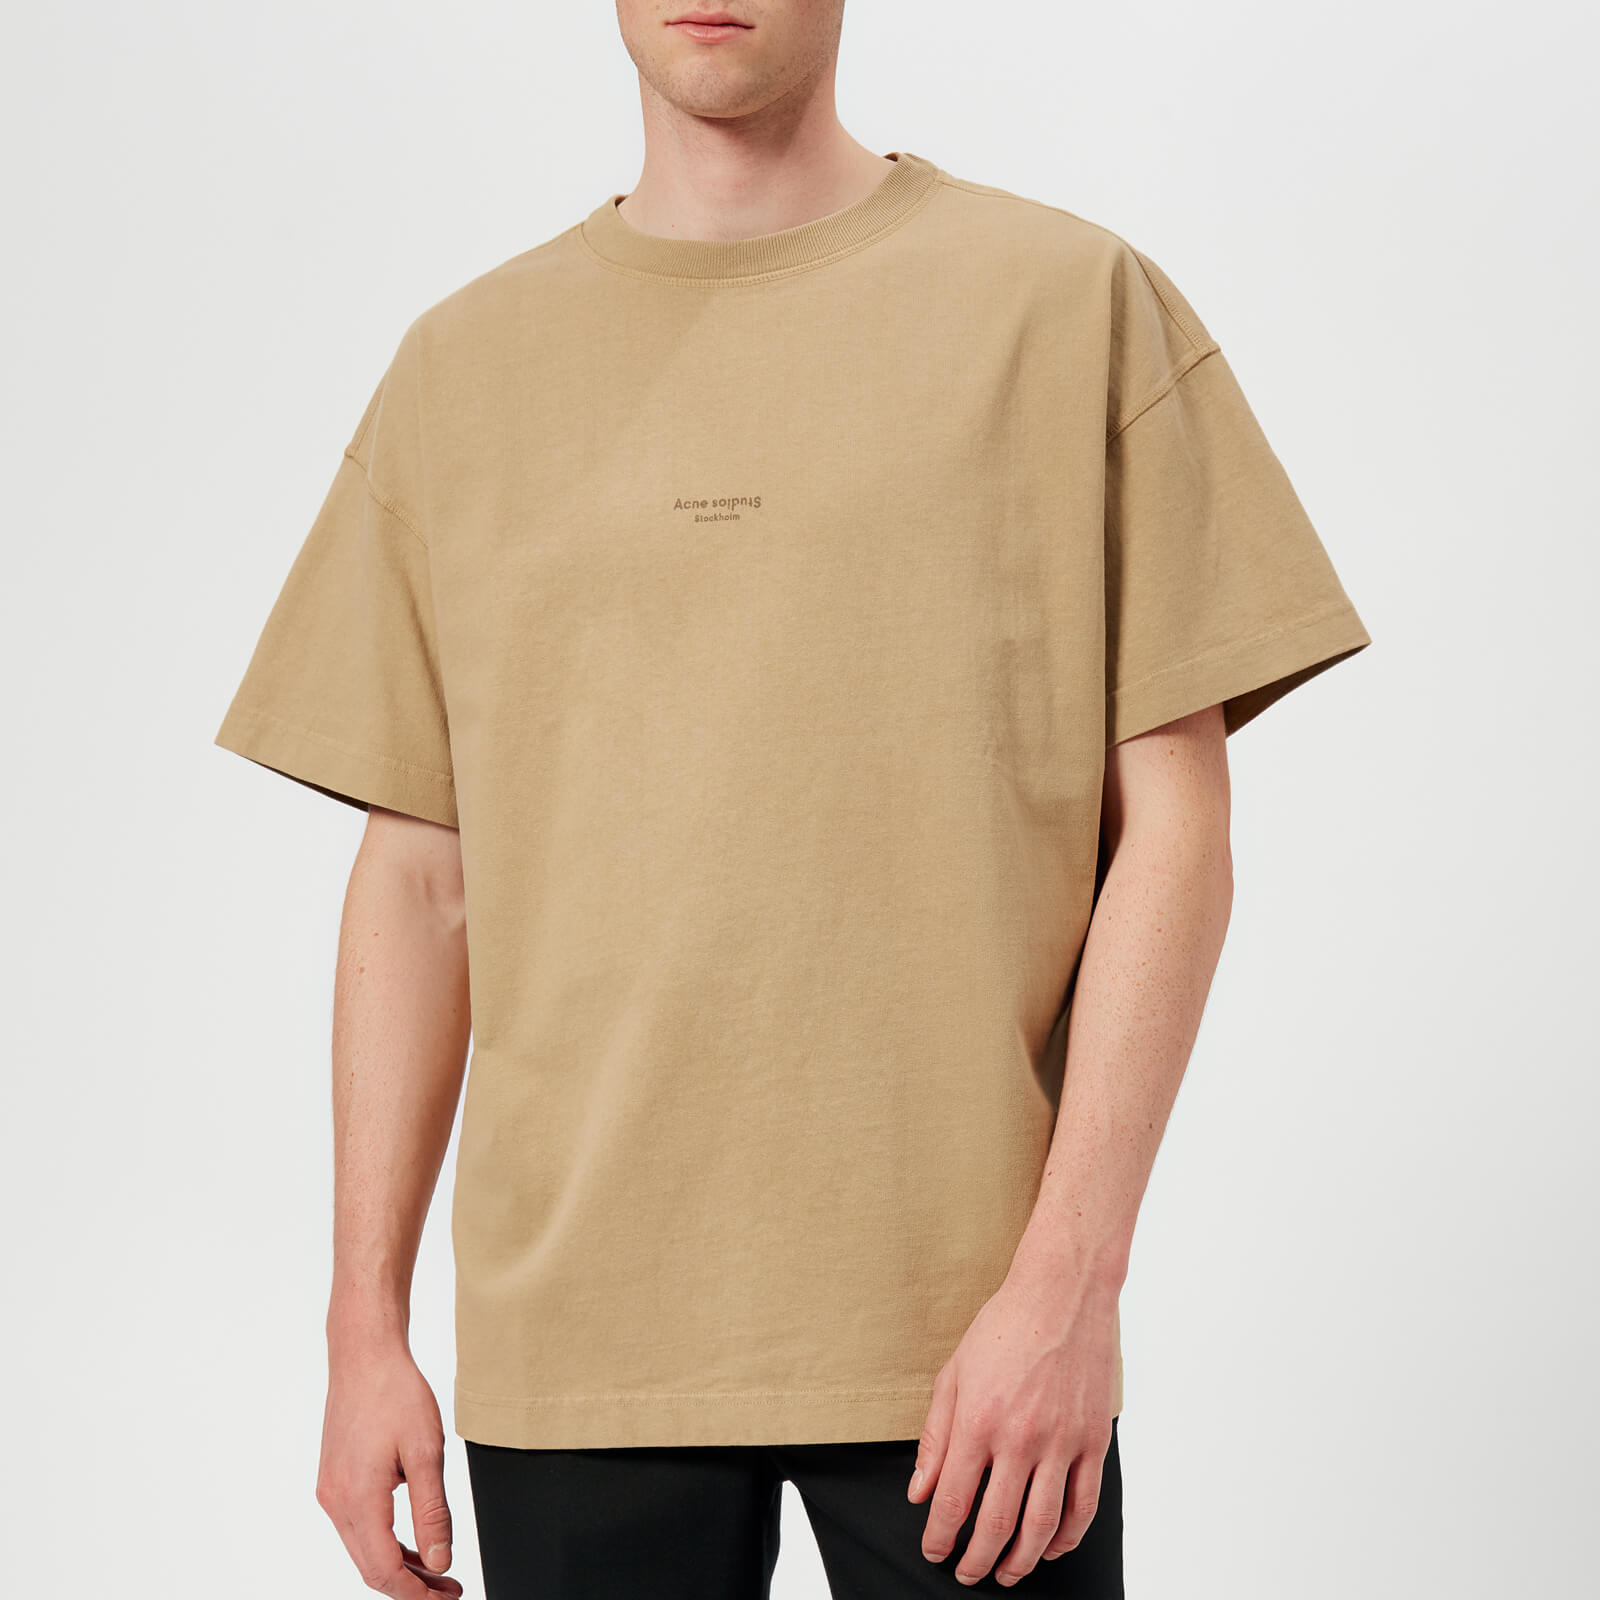 8e1efc648e Acne Studios Men s Jaxon Oversized T-Shirt - Sand Beige - Free UK Delivery  over £50